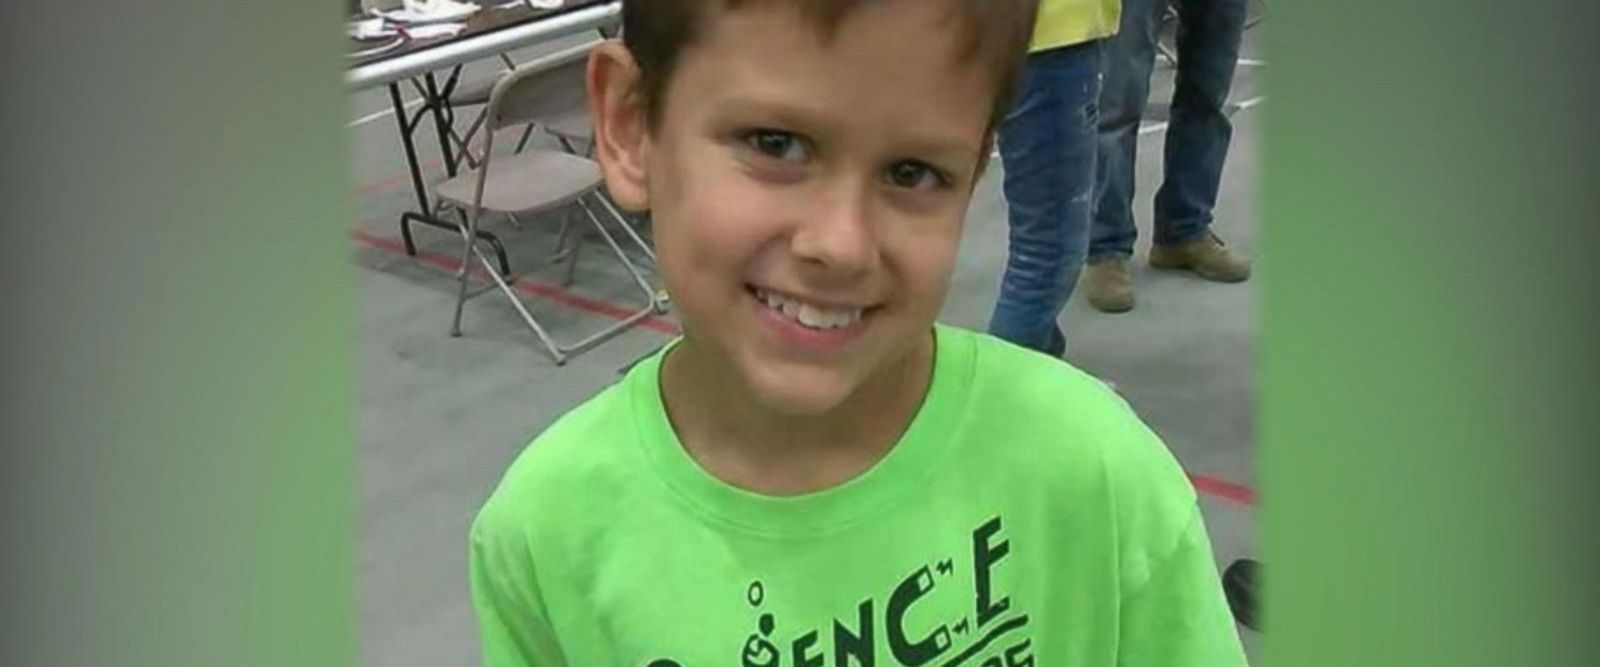 VIDEO: Woman says 12-year-old son who died had flu-like symptoms but test came back negative